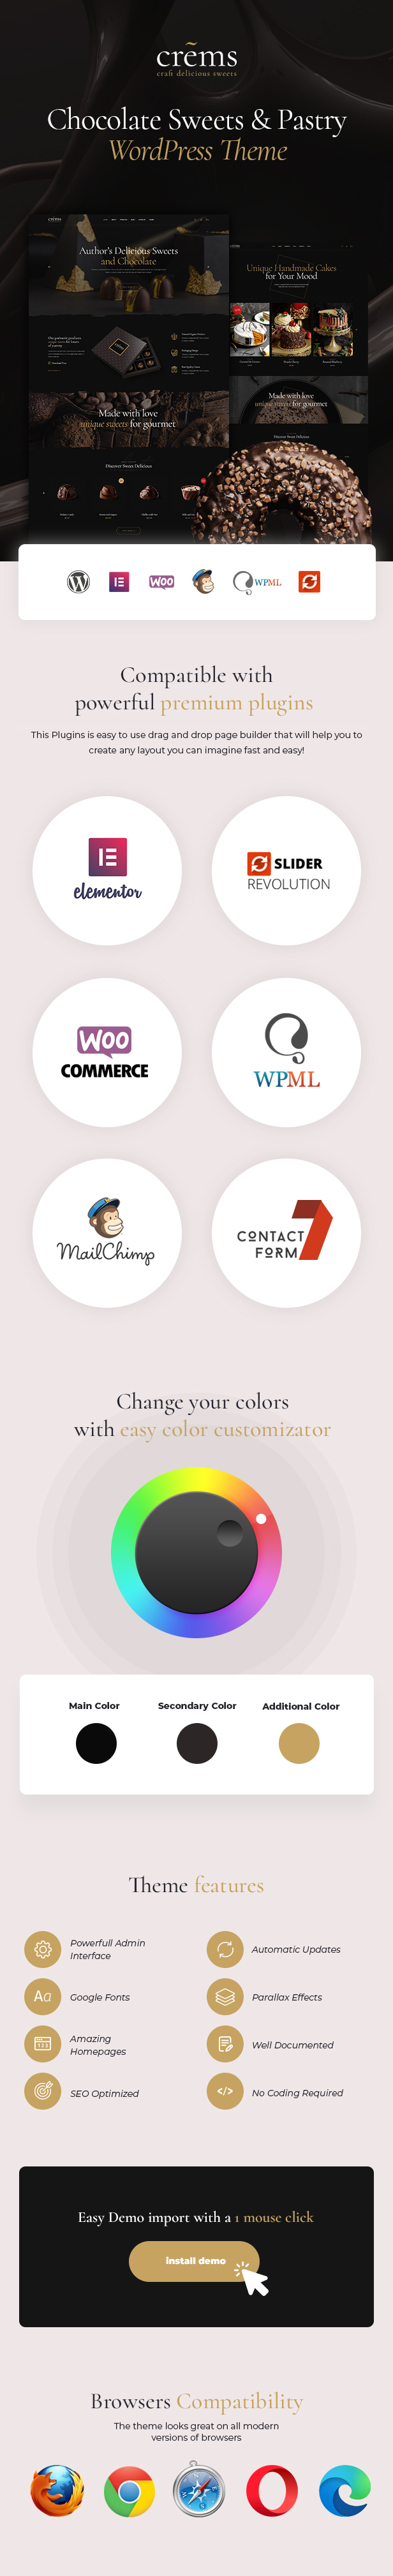 Crems - Sweets & Pastry WordPress Theme - 5